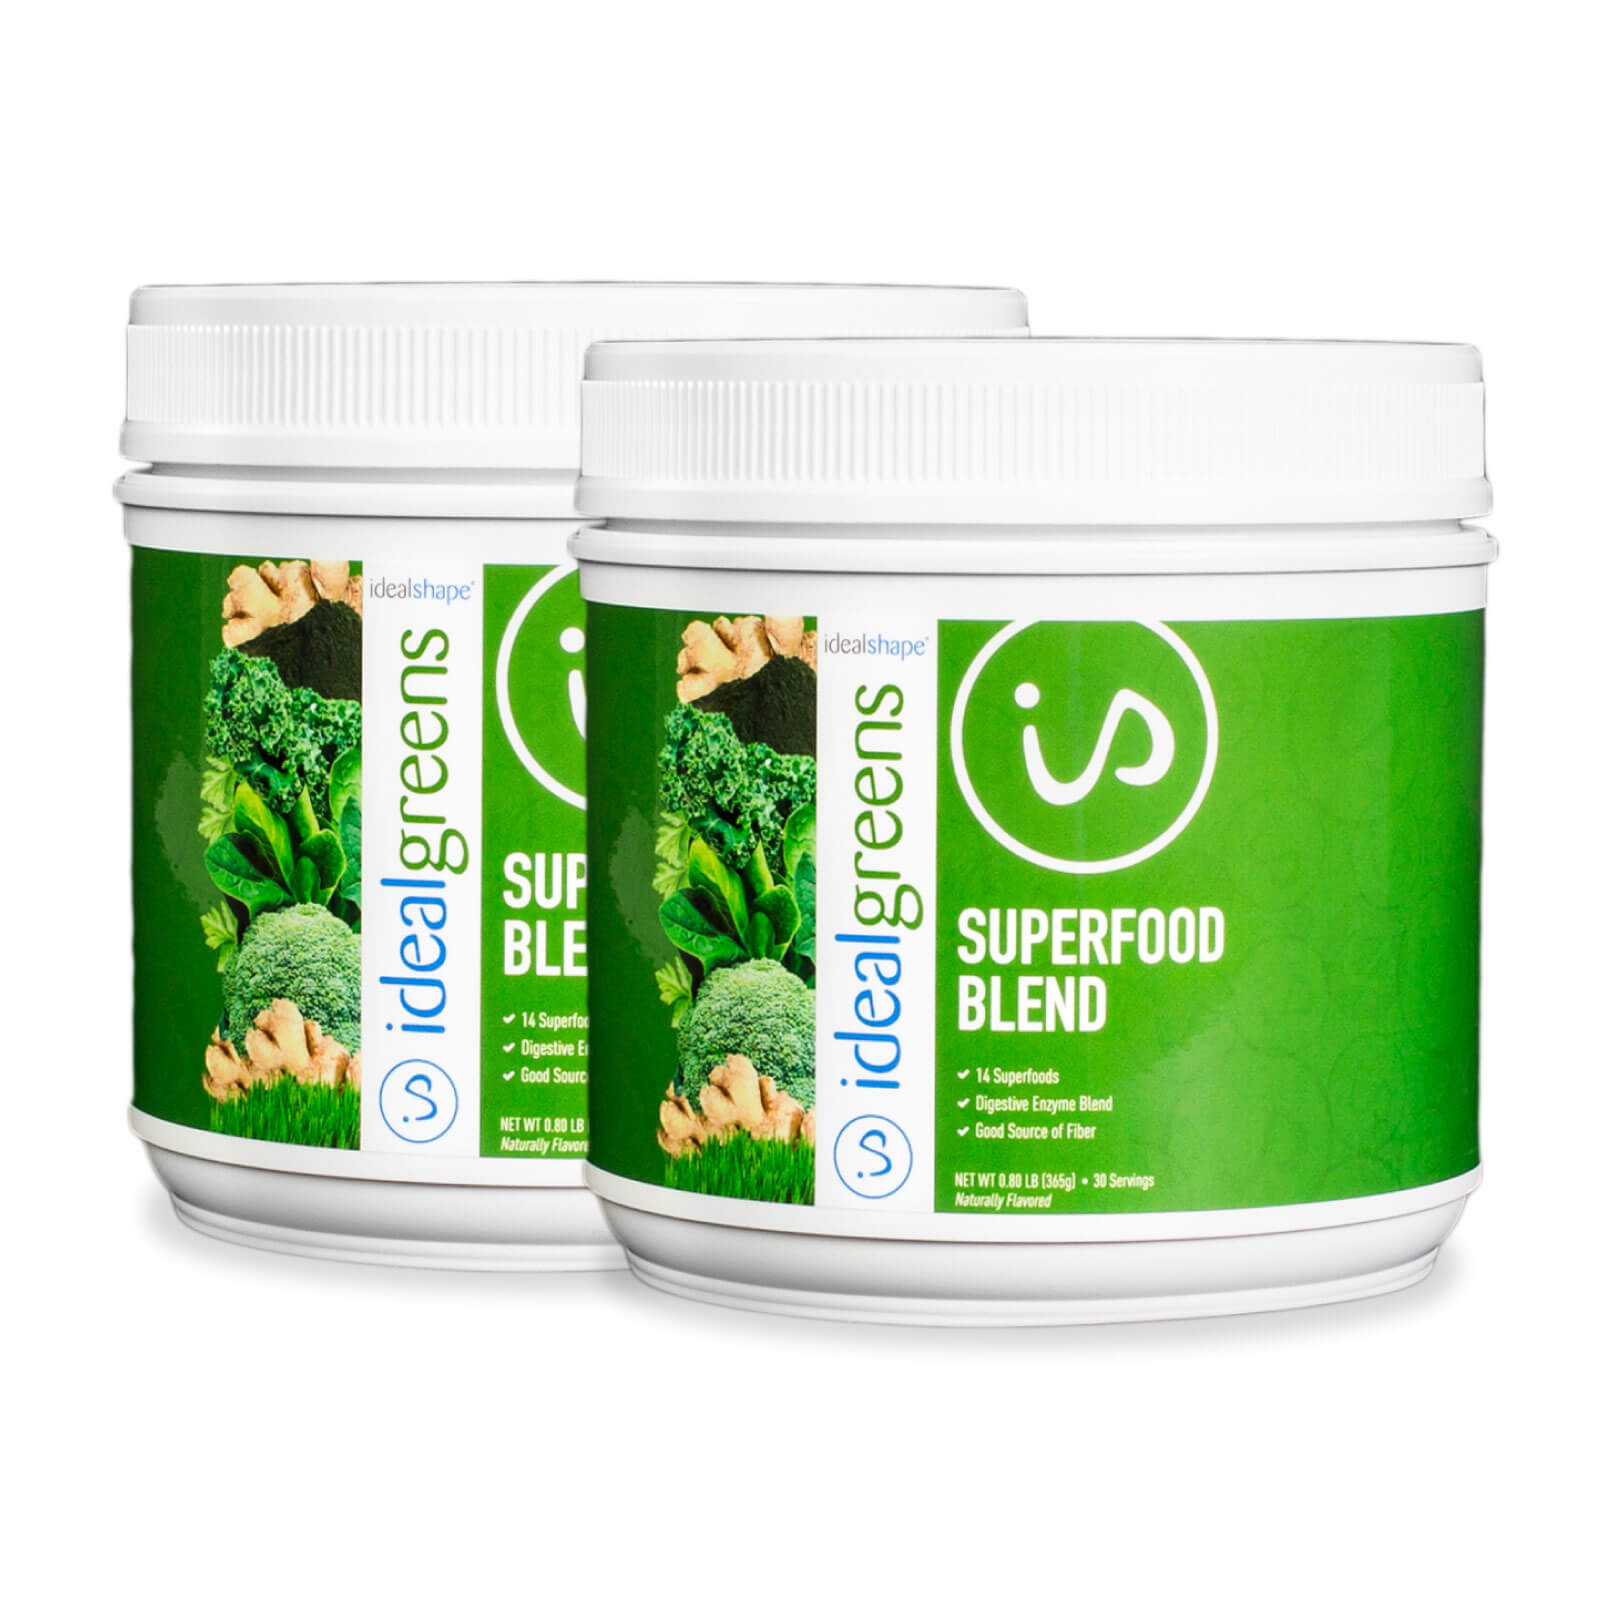 IdealGreens Superfood Blend 2 Tubs